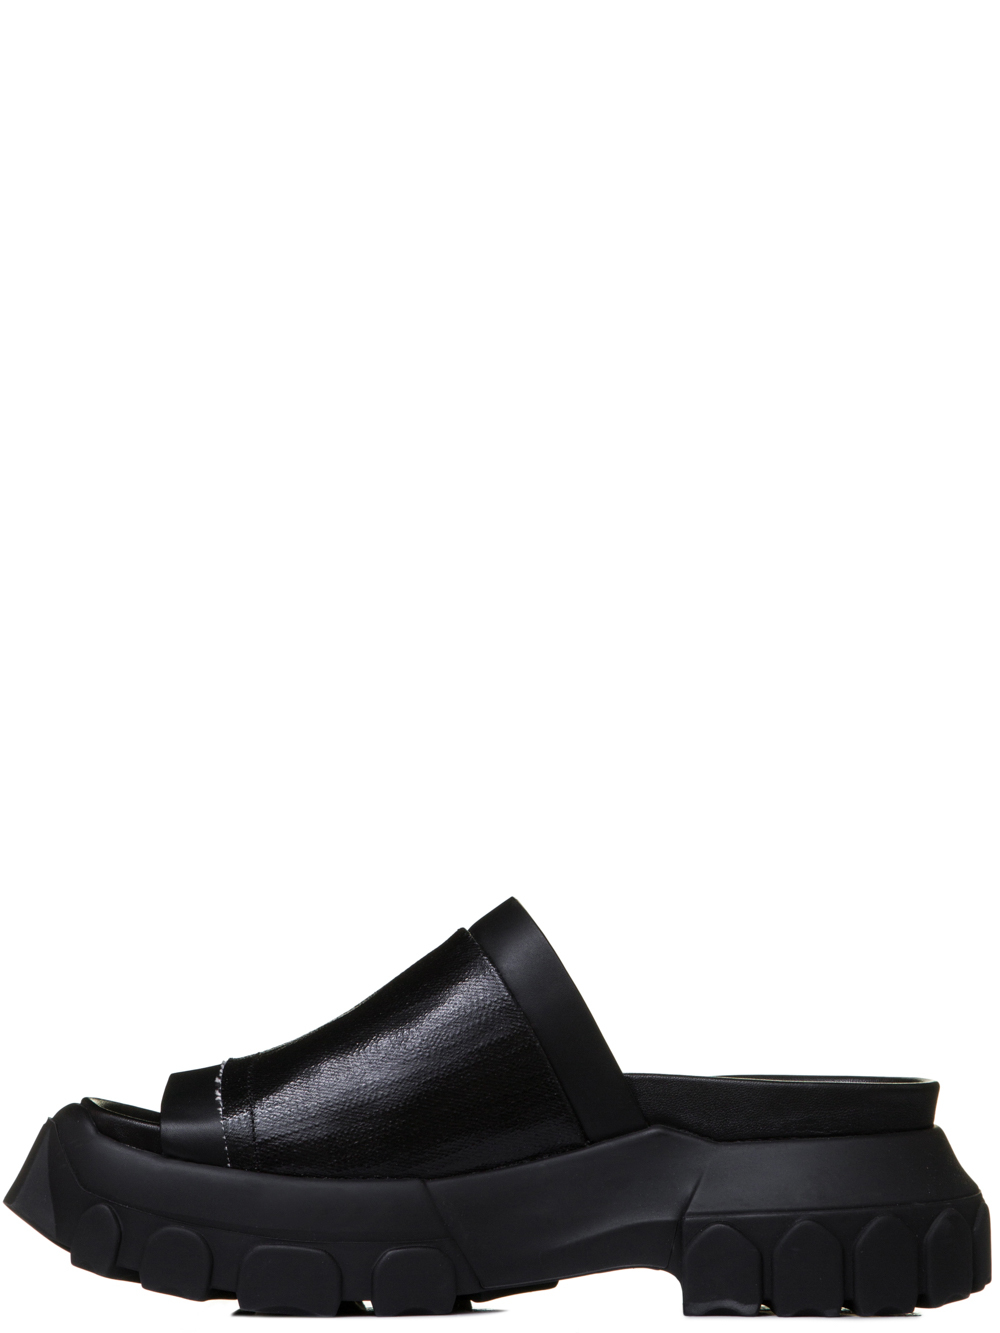 RICK OWENS SS19 BABEL TRACTOR SLIDES IN BLACK